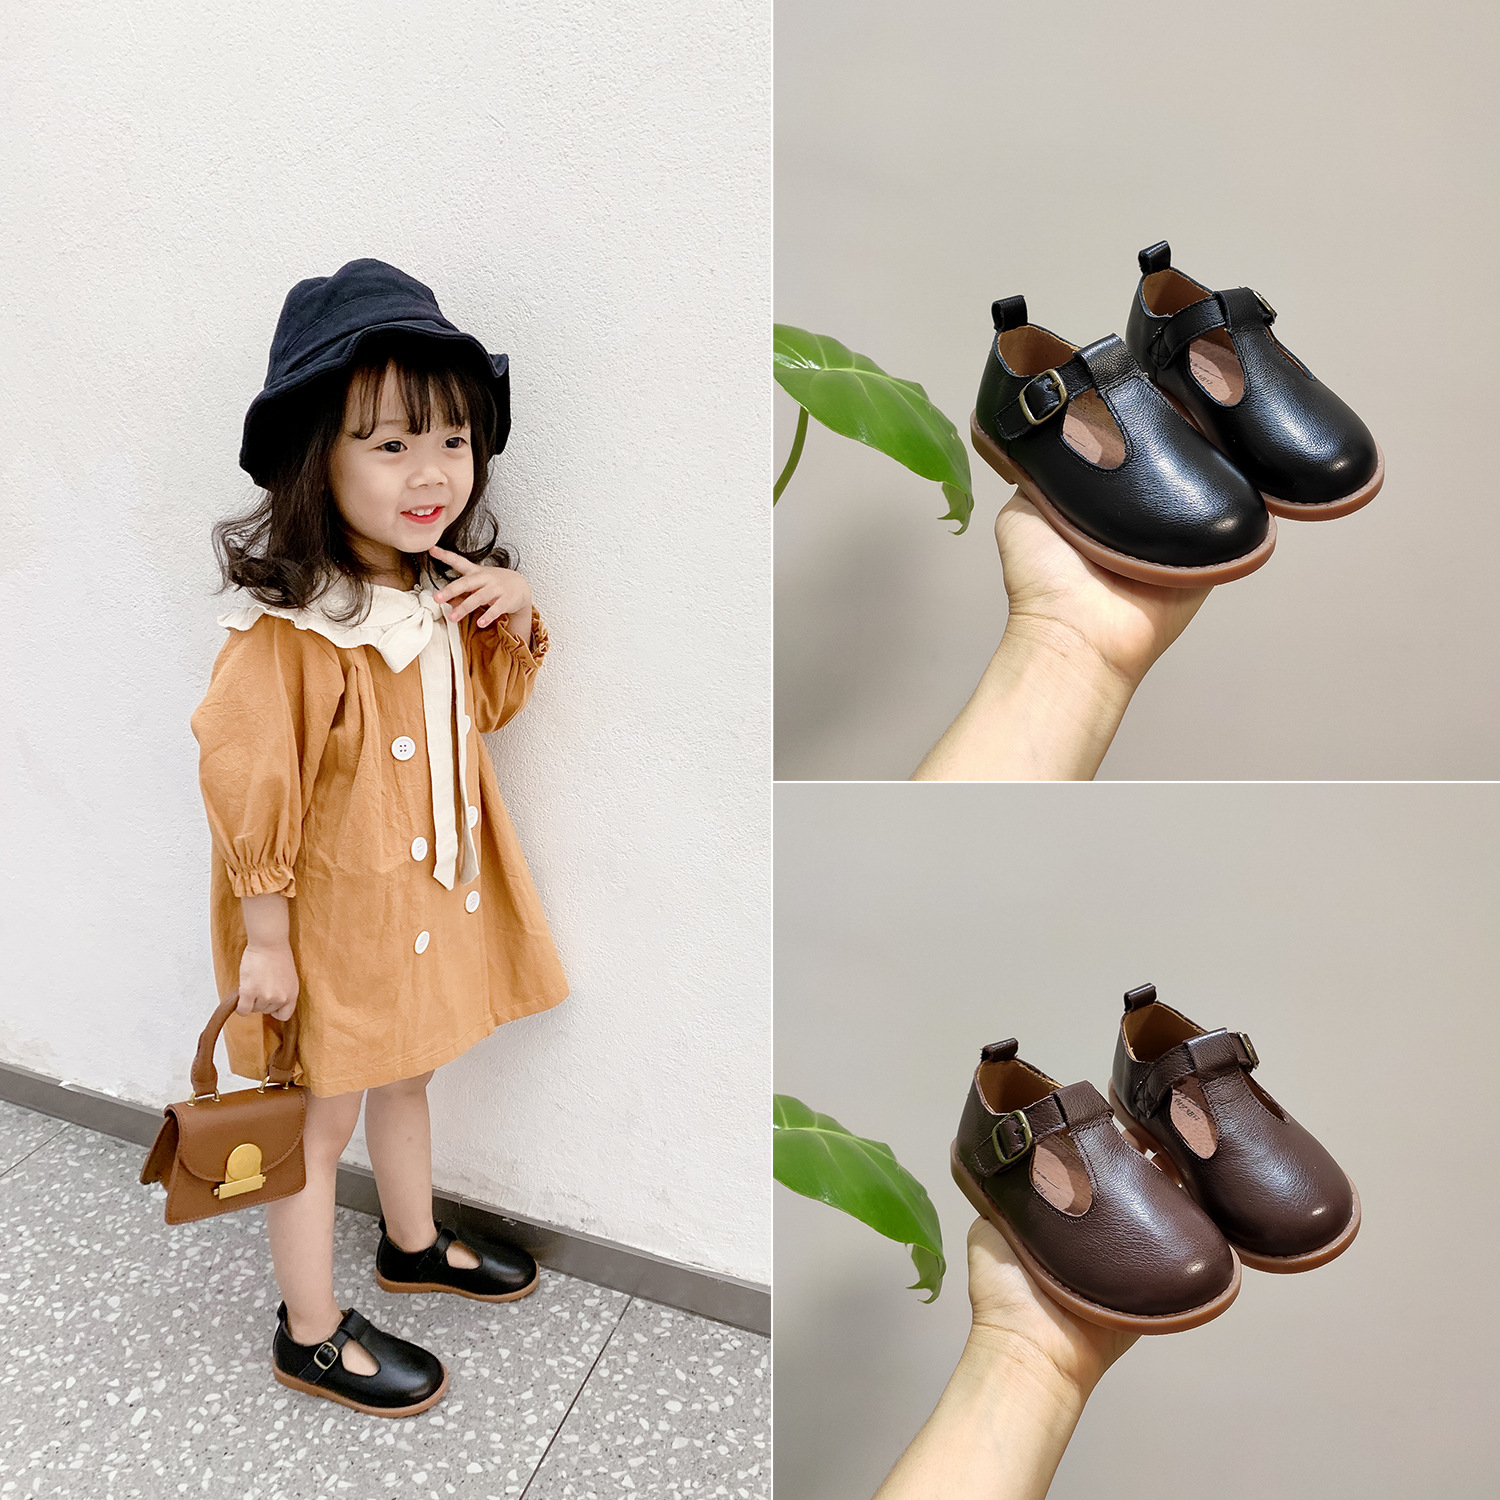 Children Genuine Leather Shoes Vintage Dancing Girls Back School Shoes Kids Infant Formal Casual Flat Party Pumps Retro Sneakers